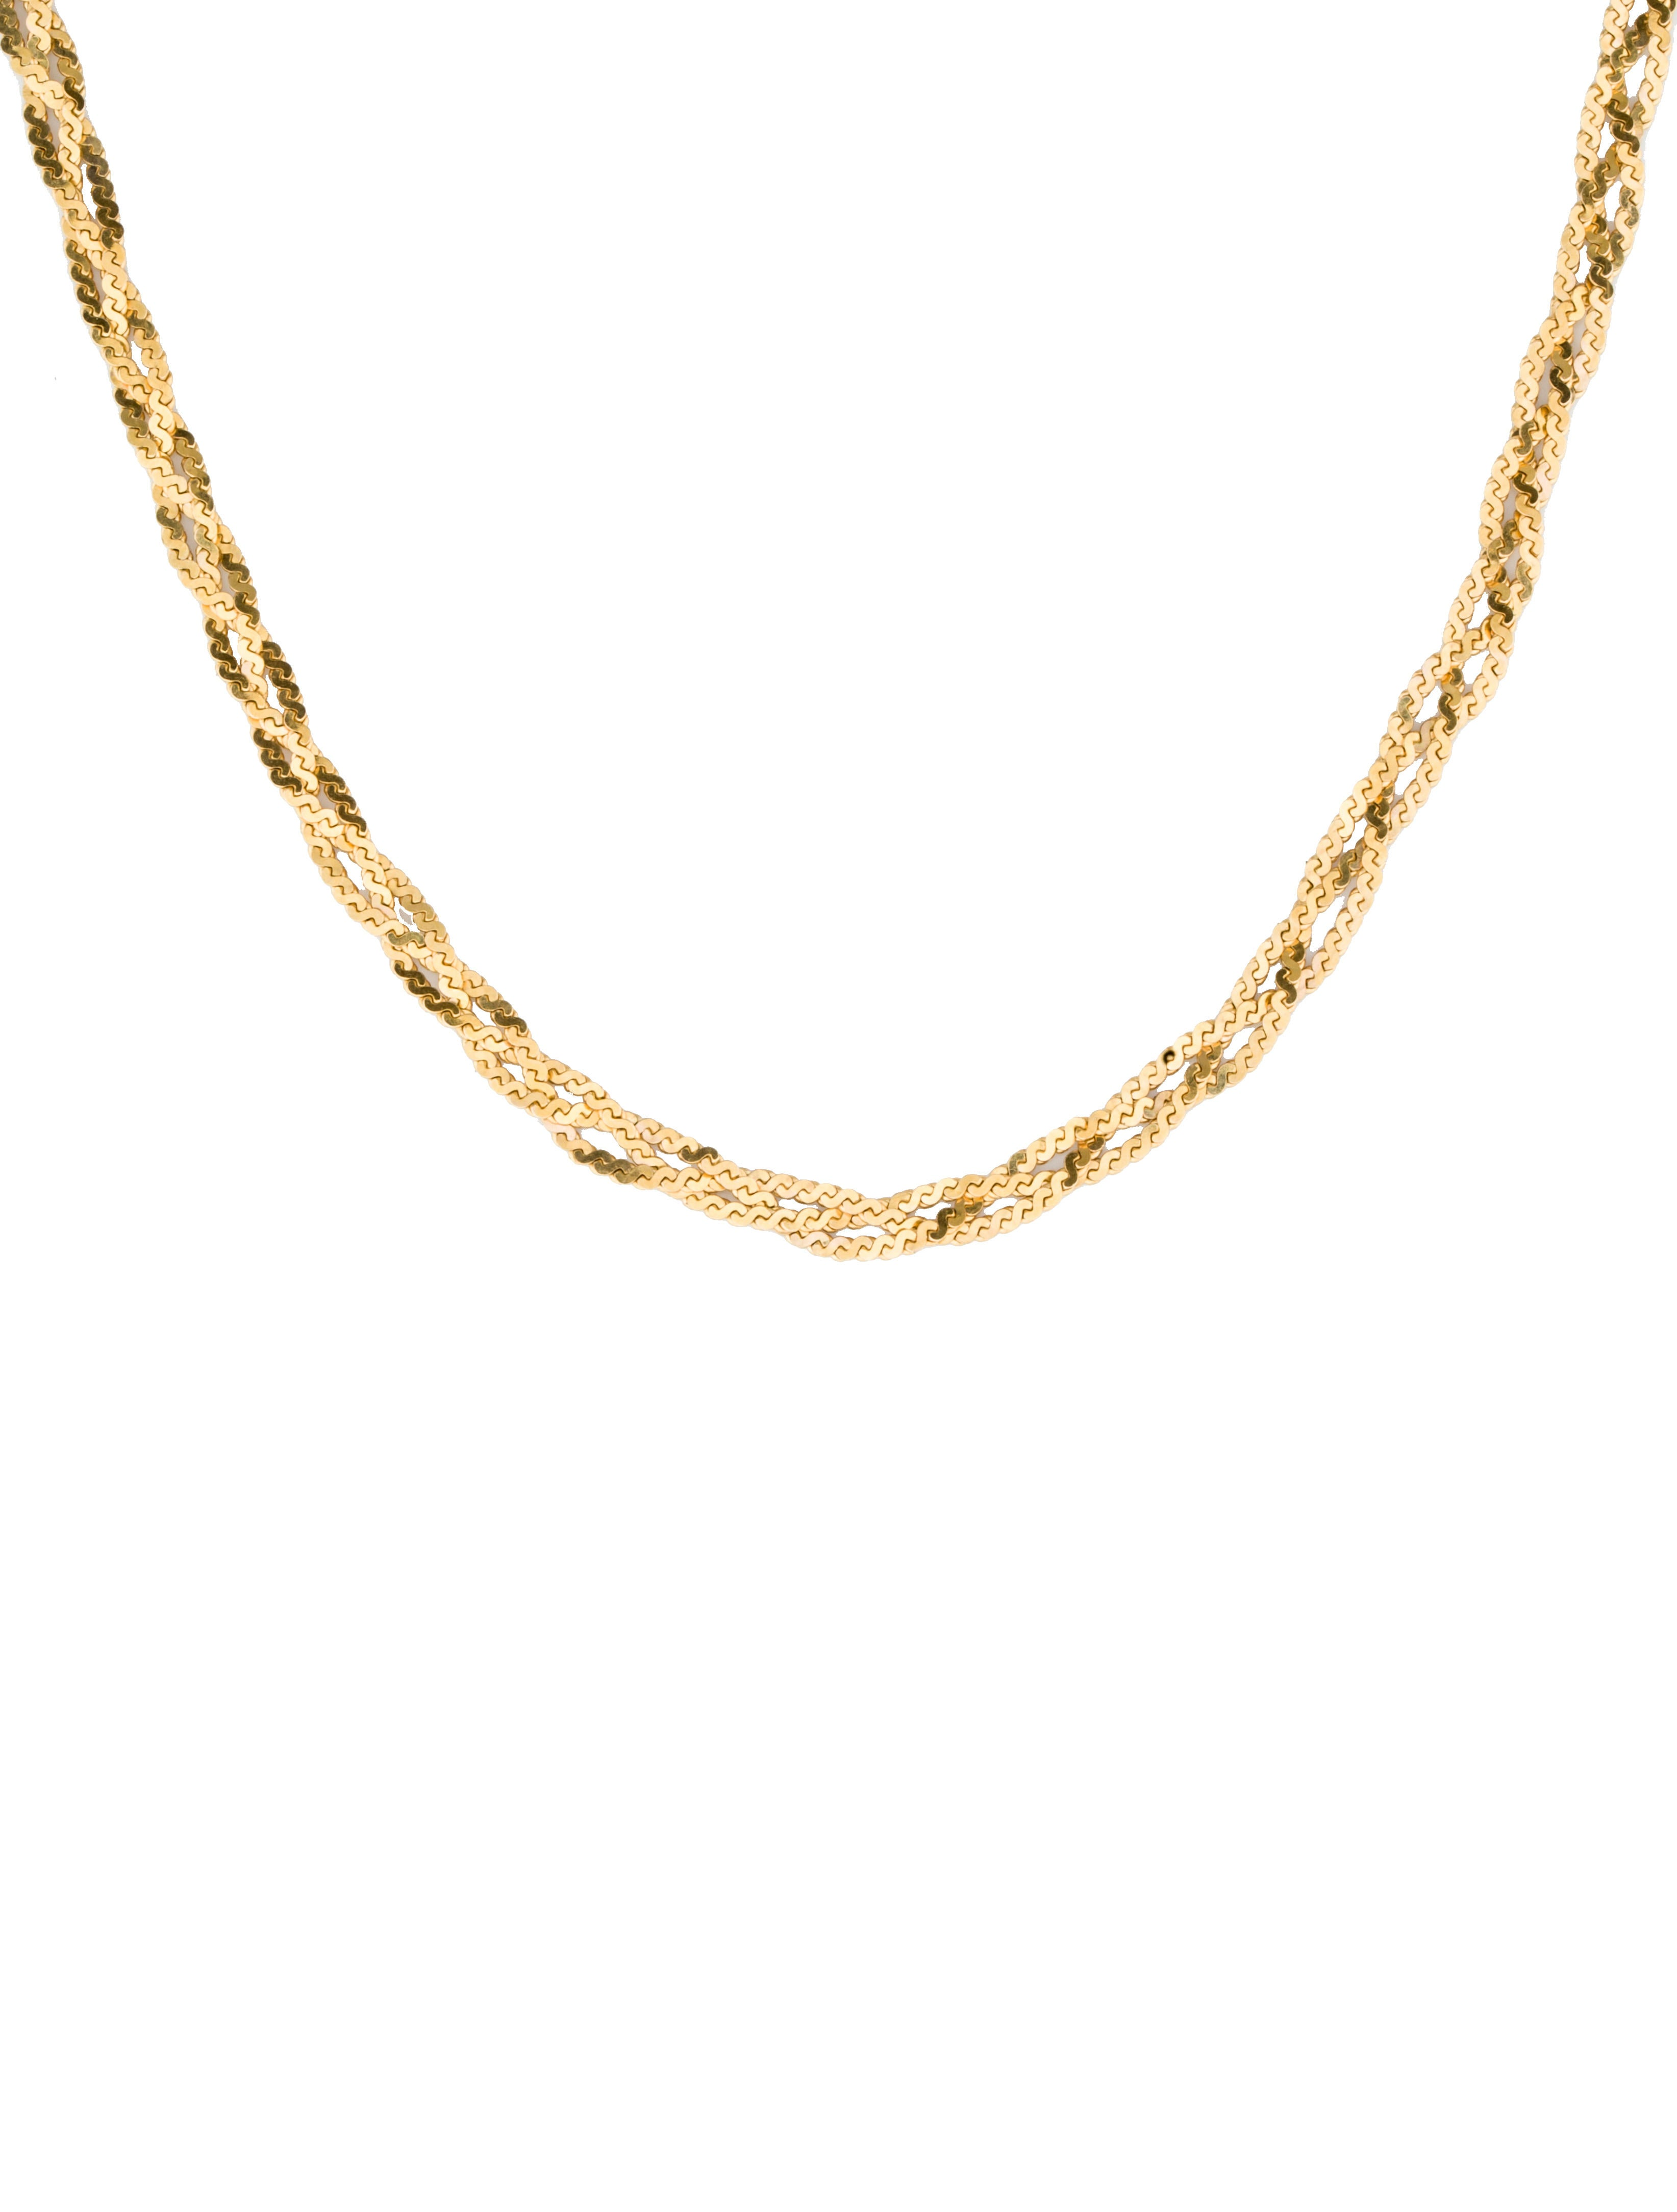 14k Gold Braided Chain Necklaces Fjn23367 The Realreal